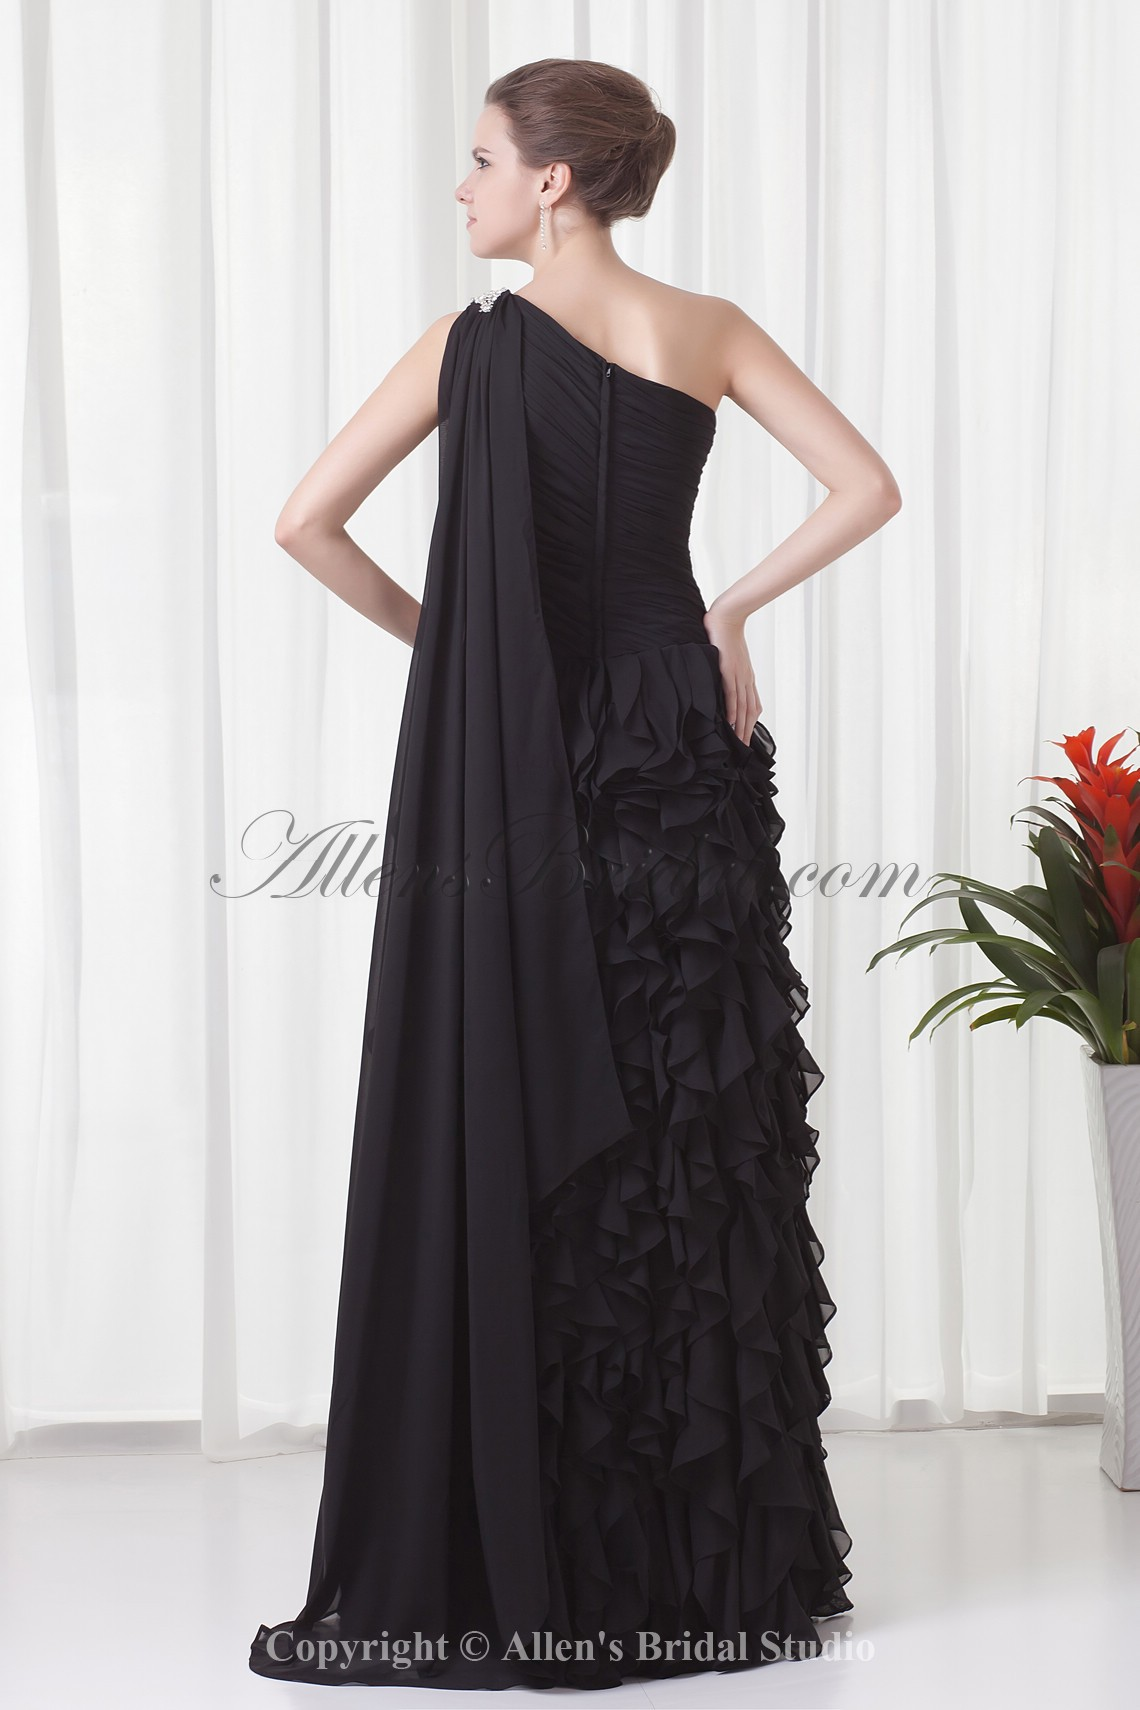 /280-2238/chiffon-asymmetrical-neckline-column-floor-length-prom-dress.jpg